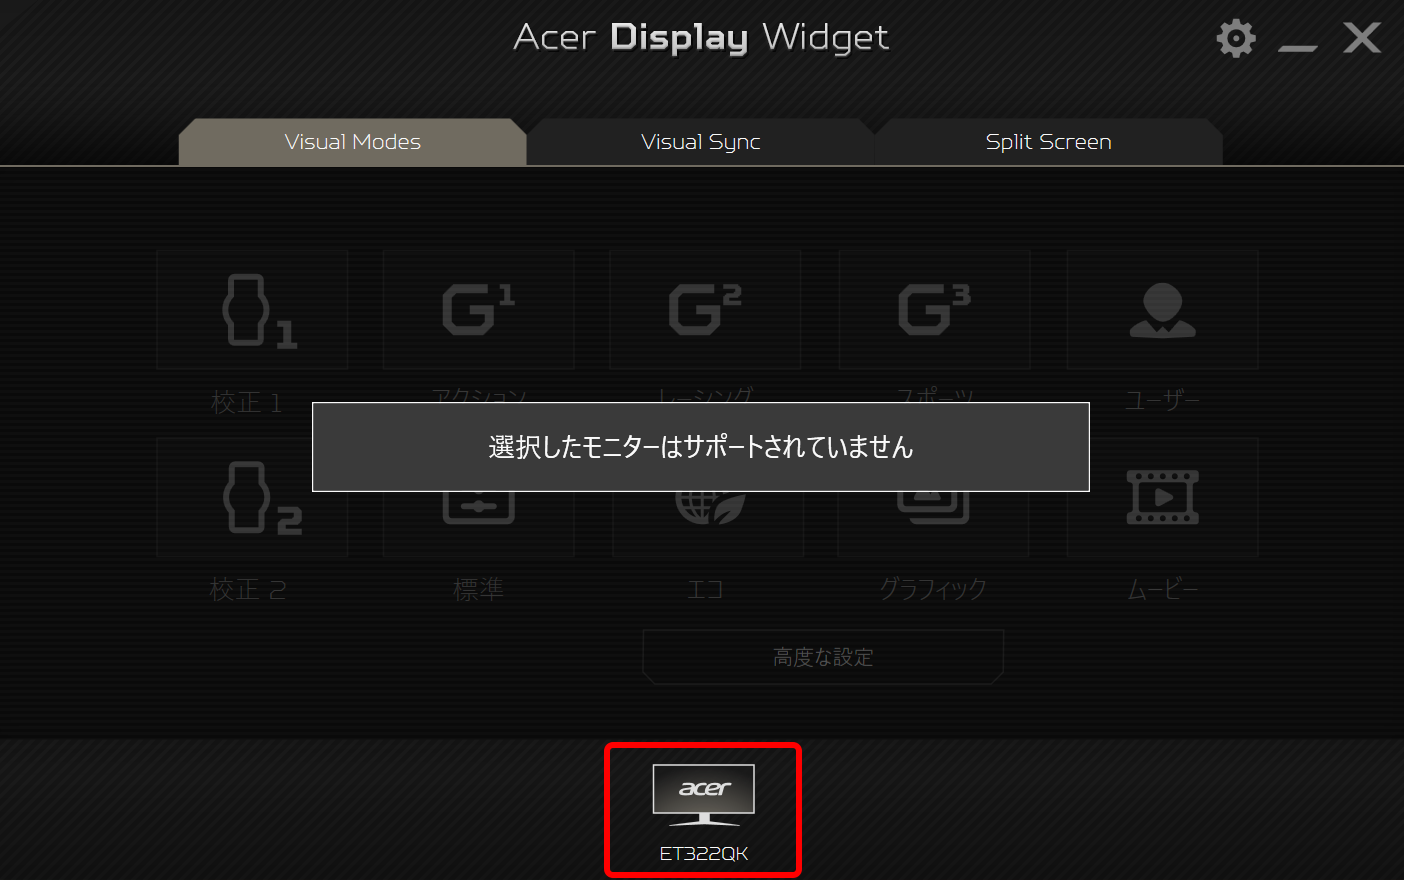 acer display widget Visual Modes